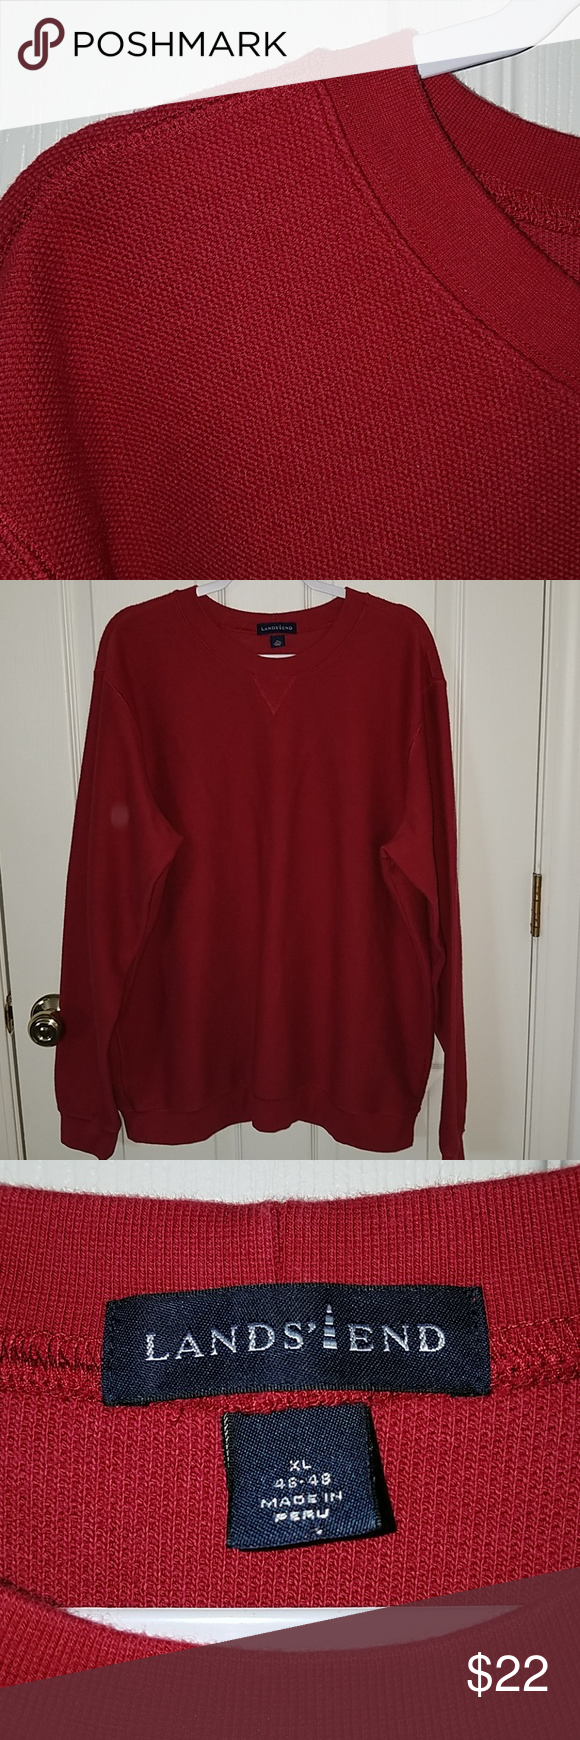 Lands End Mens Shirt Nice Heavyweight Lands End Mens Long Sleeve Shirt Warm And Cozy Preowned Exc Long Sleeve Shirt Men Long Sleeve Shirts Clothes Design [ 1740 x 580 Pixel ]